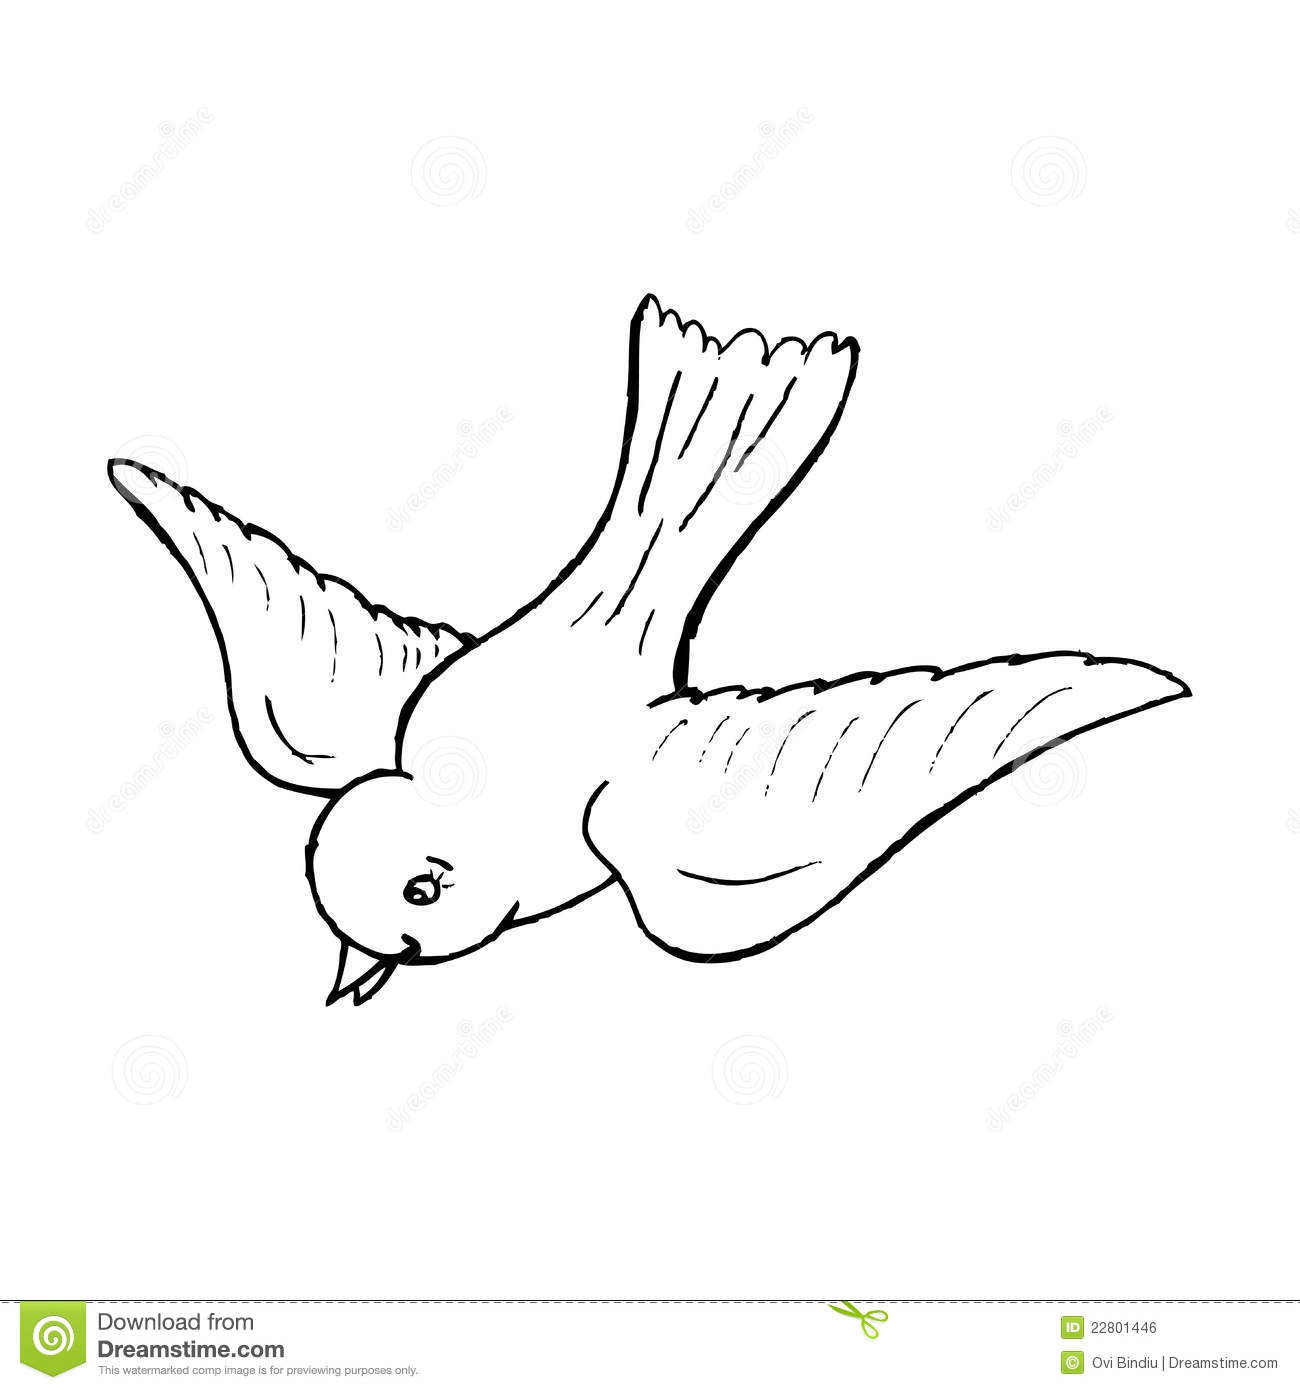 A flying bird stock illustration. Image of animal, beak ...